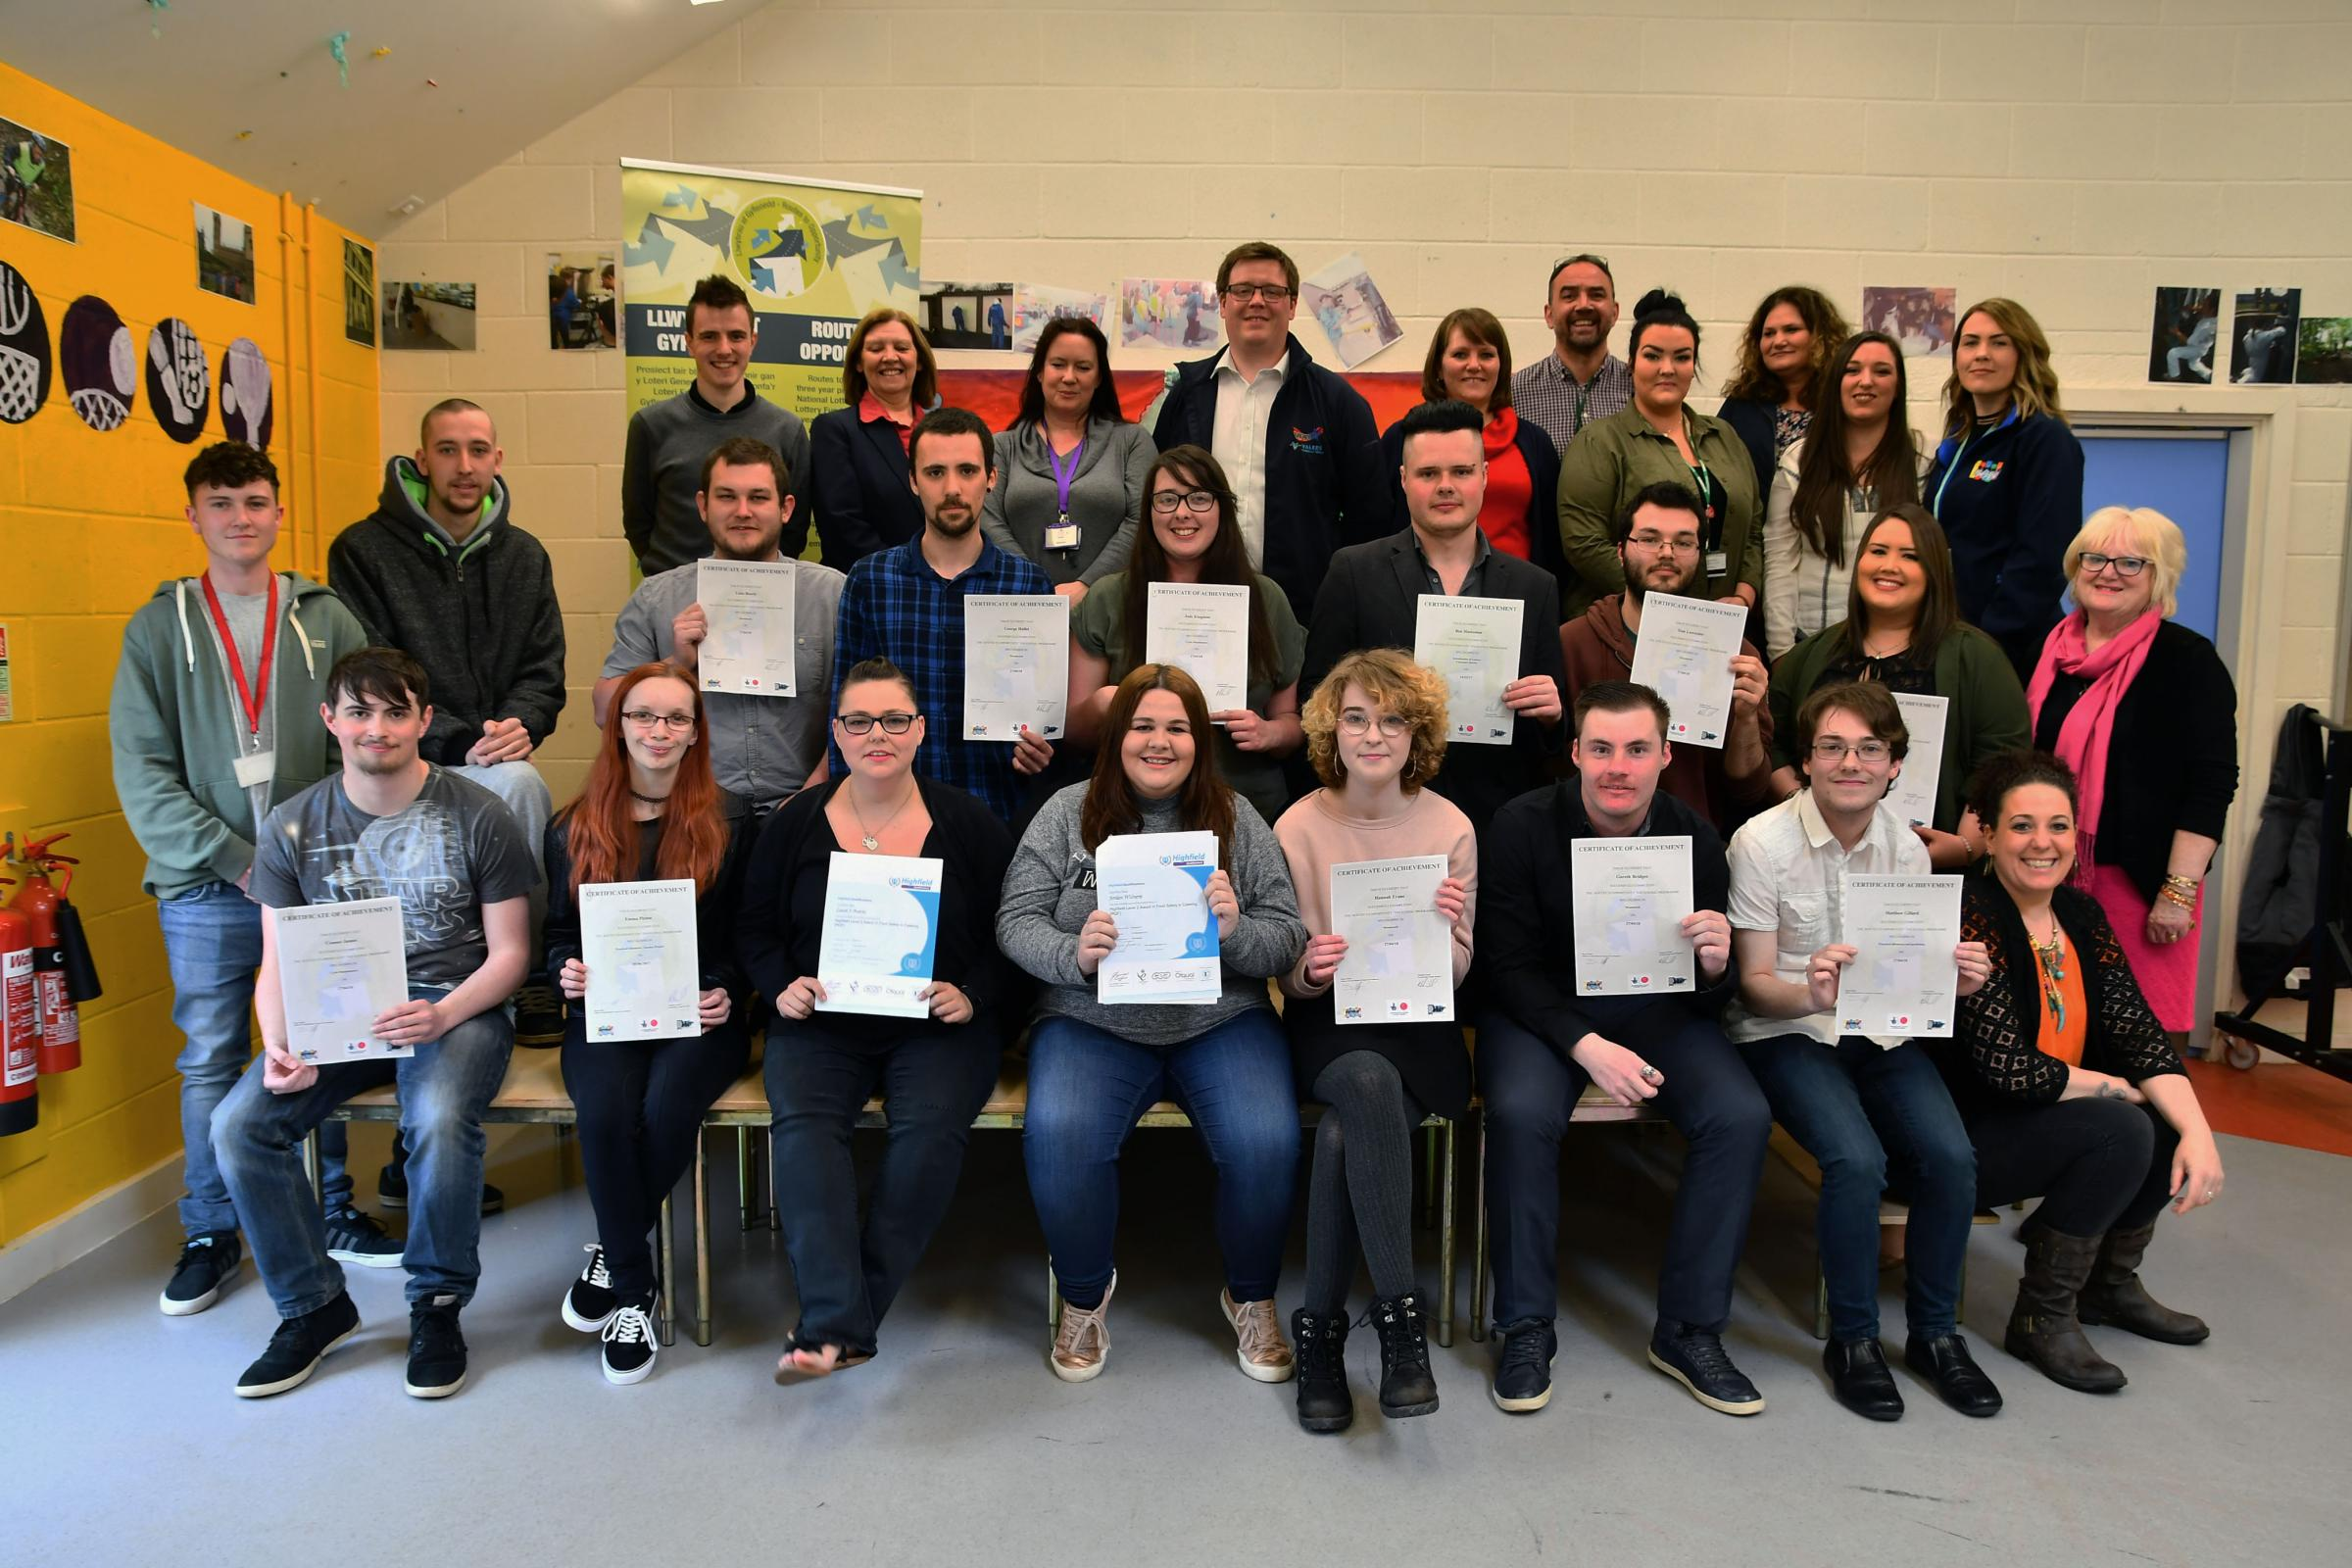 Routes to Opportunity participants with their certificates.